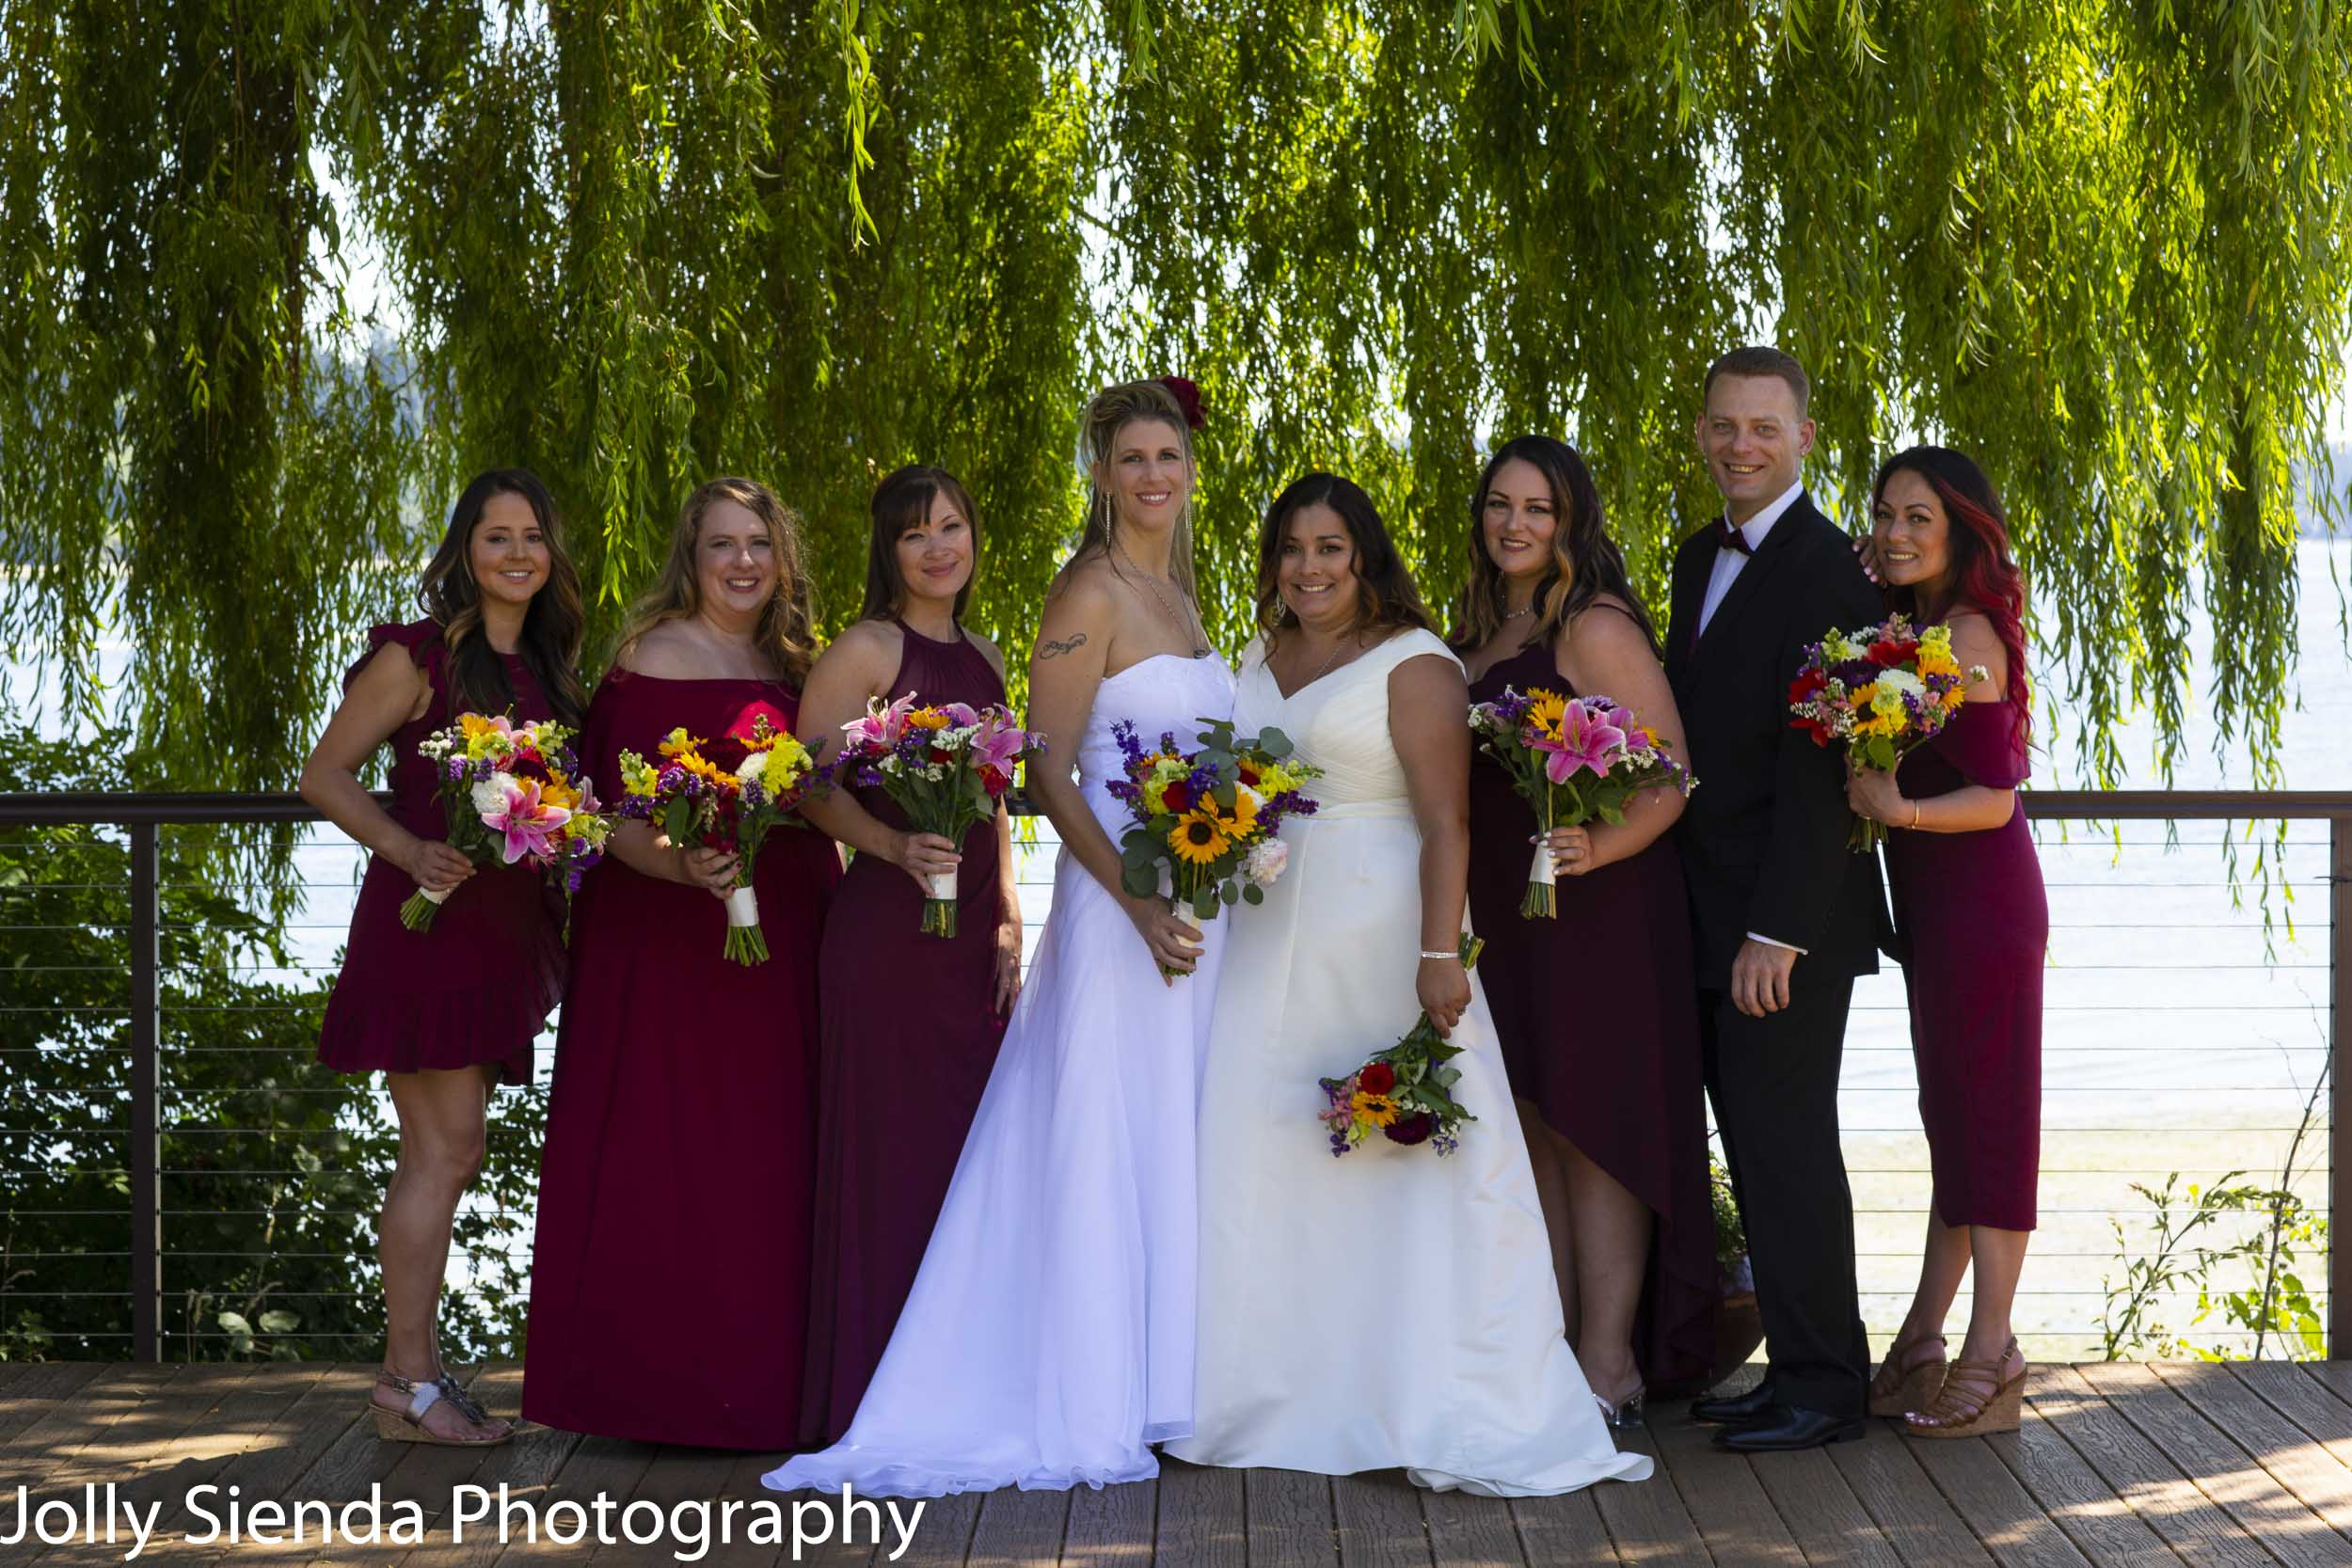 Nicole and Michelle with their wedding party